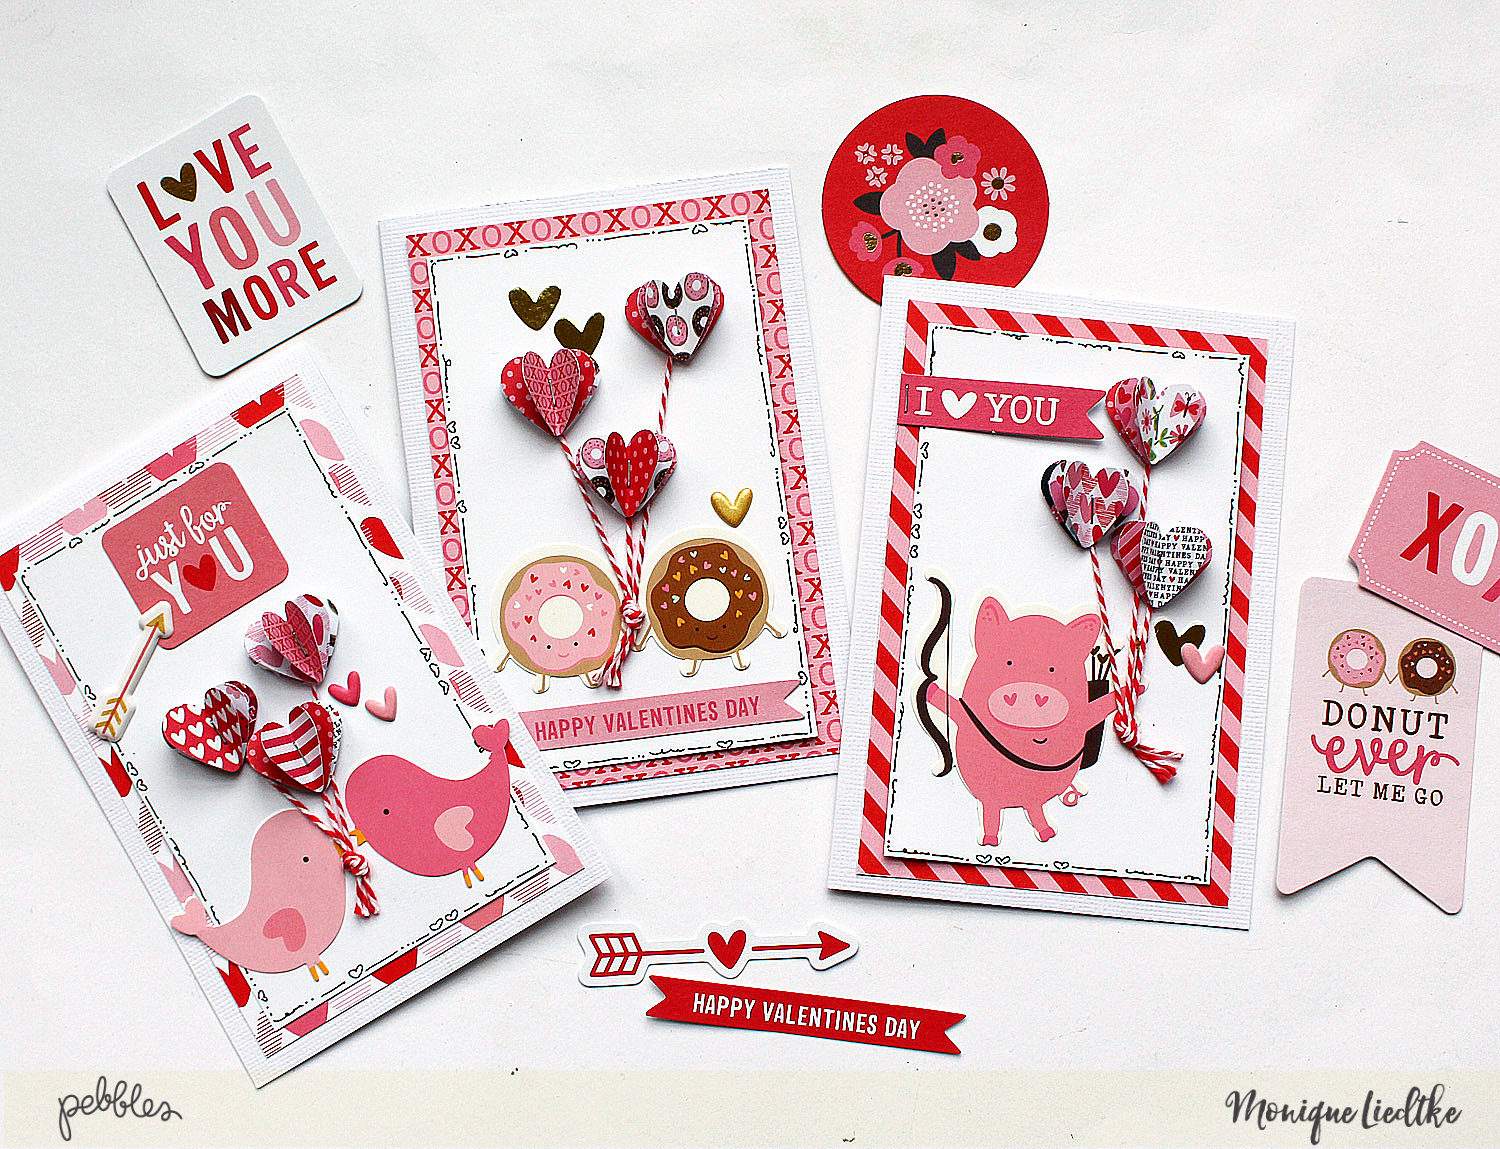 3D Hearts Cards made by @MoniqueLiedtke using the #MyFunnyValentine collection from @PebblesInc.